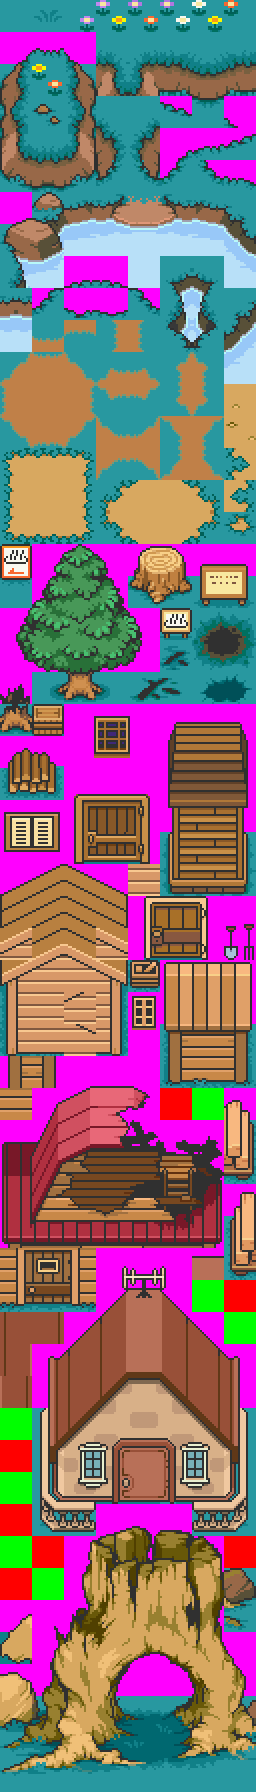 Ranger's Mother 3 Tileset Bonanza (yes there will be spoilers) « Fan